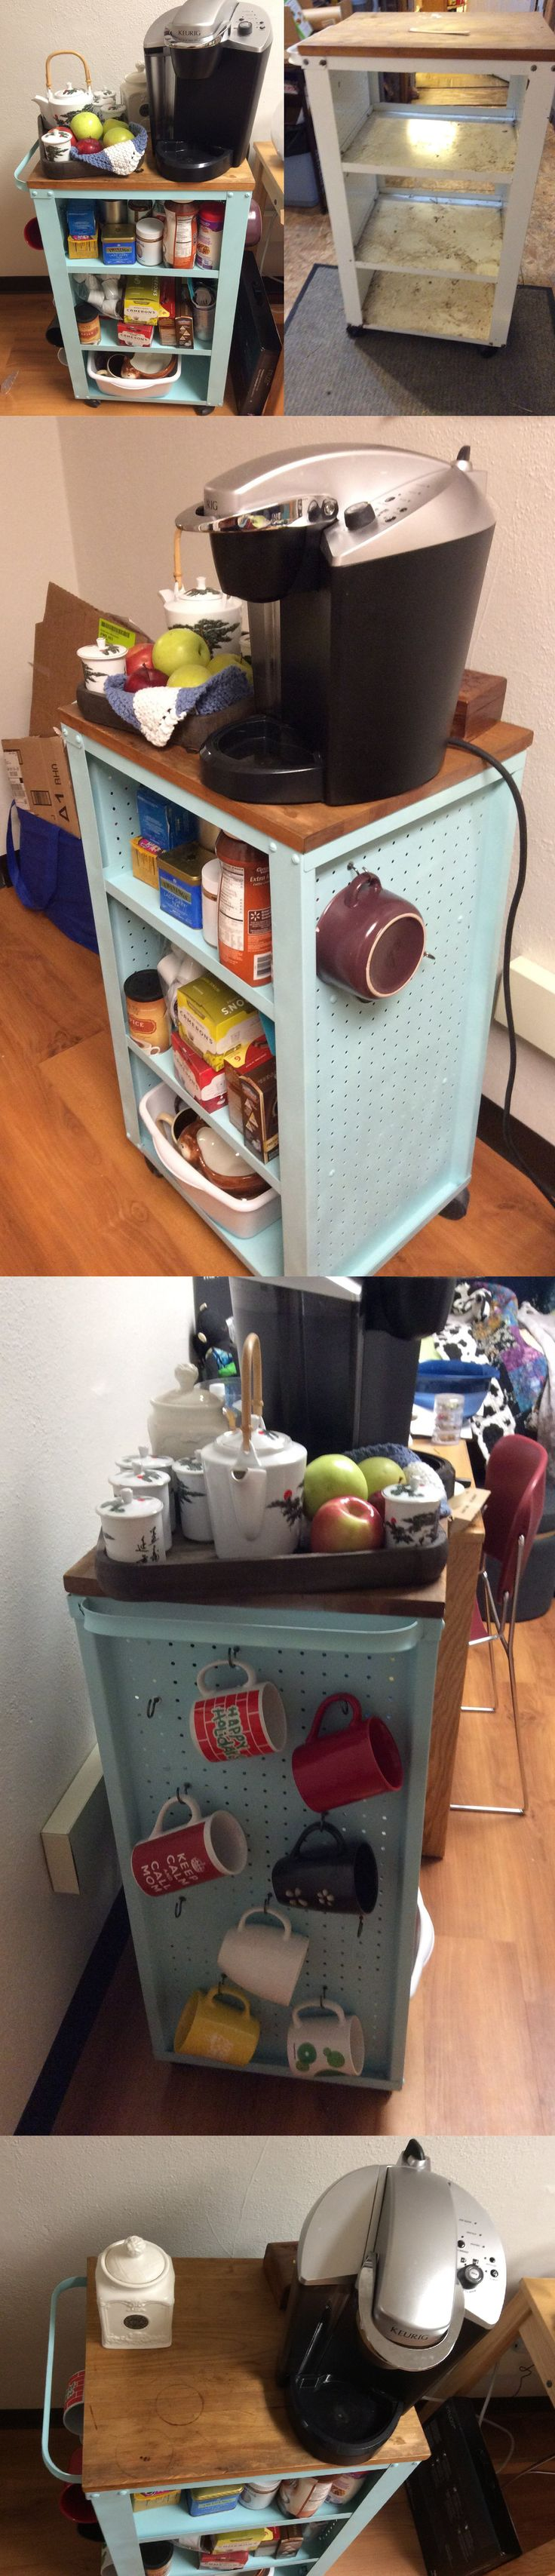 DIY Dorm room cart, before and after, kitchen cart #mint #mugs #coffee #organization #storage